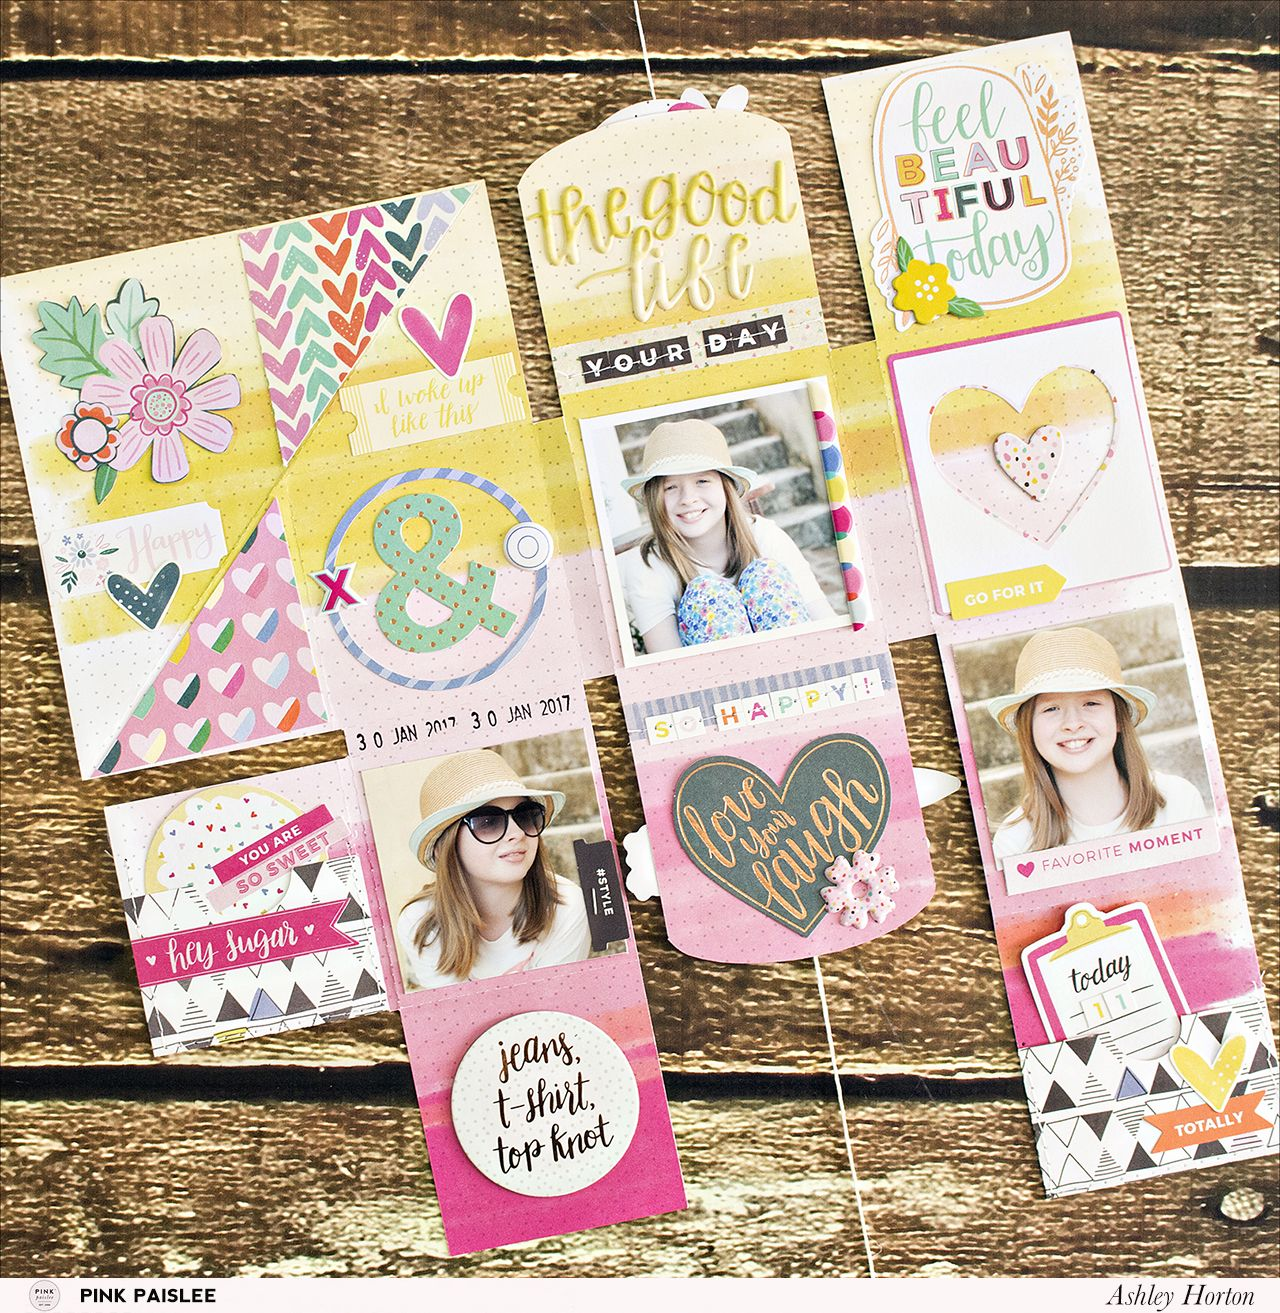 How to make scrapbook about yourself - Make A Memorable Mini Album For Yourself A Friend Or Family Member With The